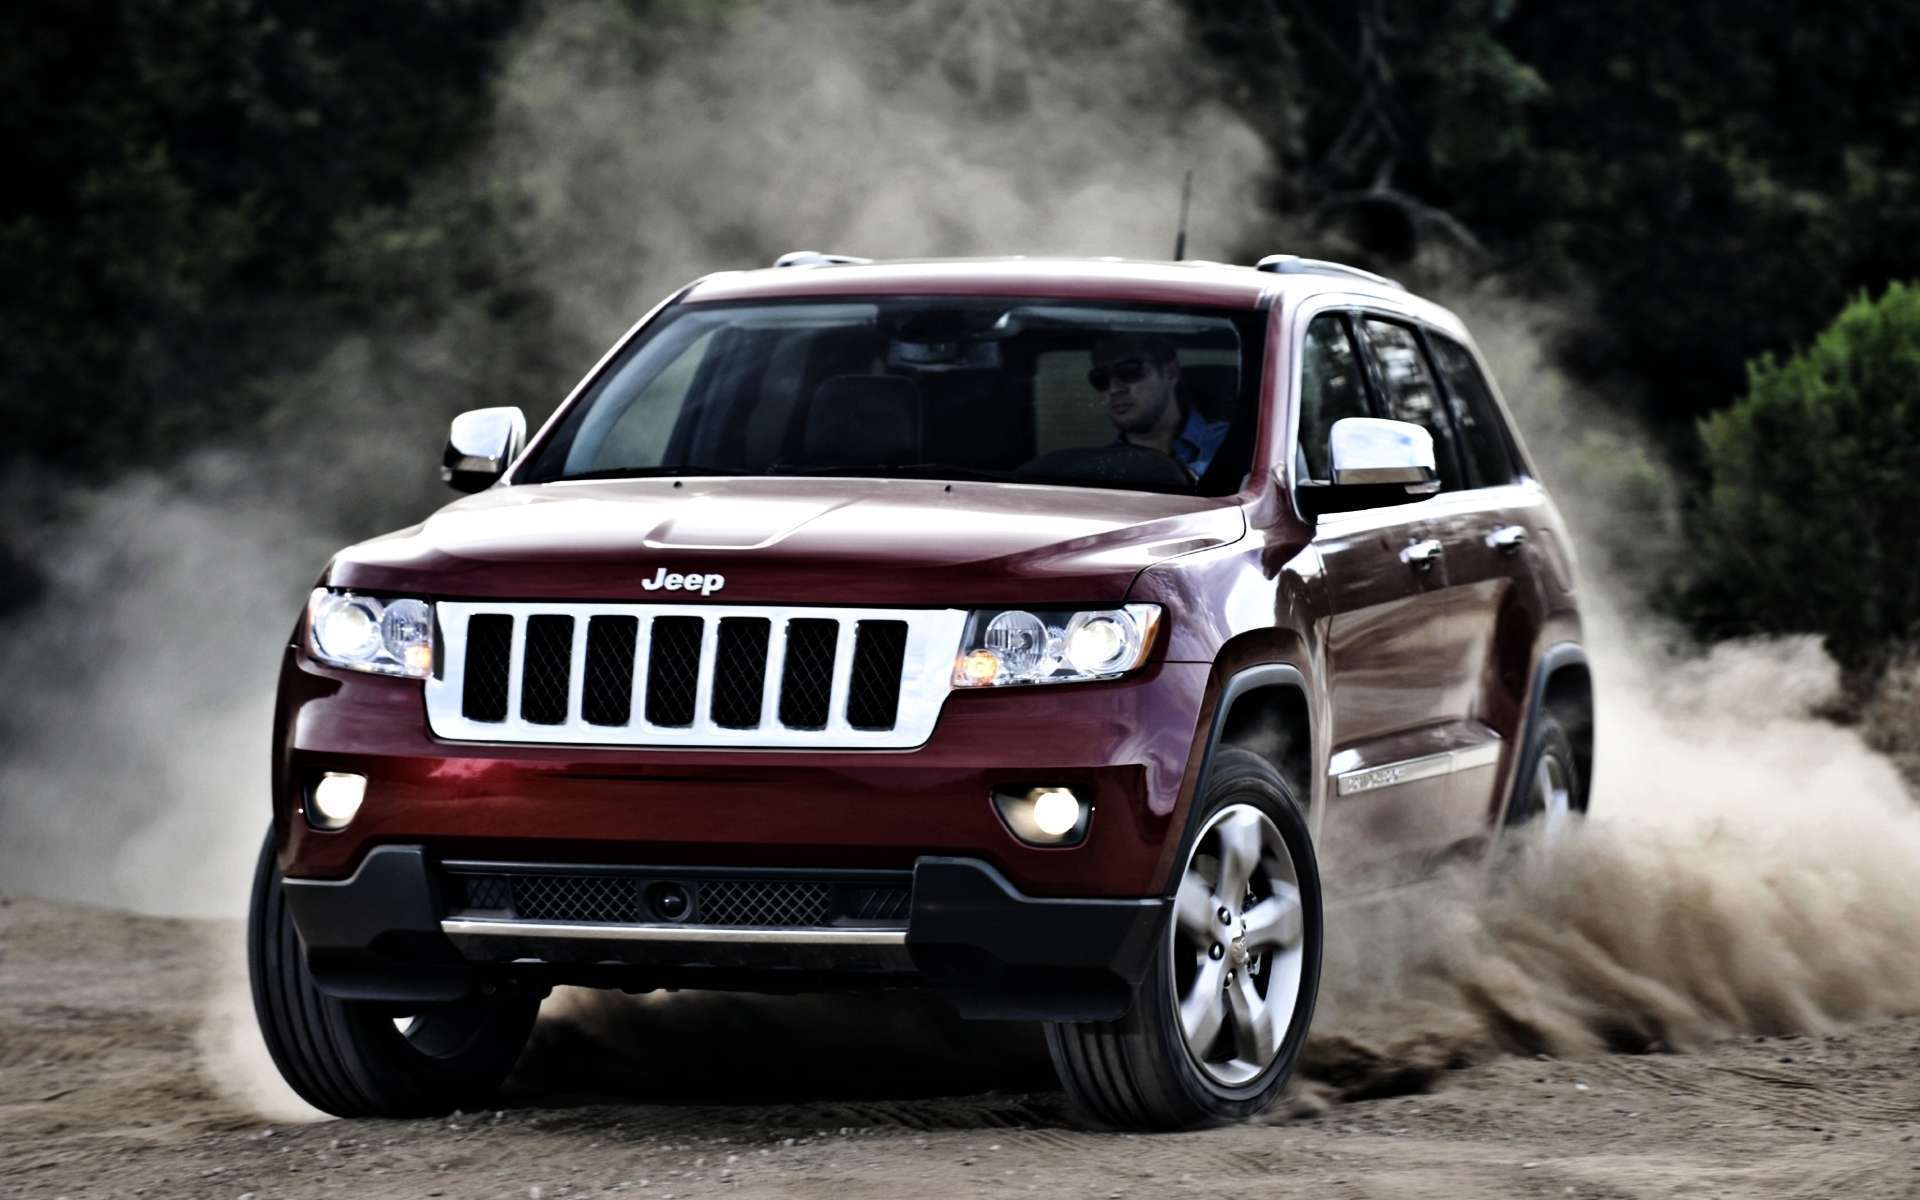 Merveilleux Jeep Grand Cherokee Hd Hd Wallpapers